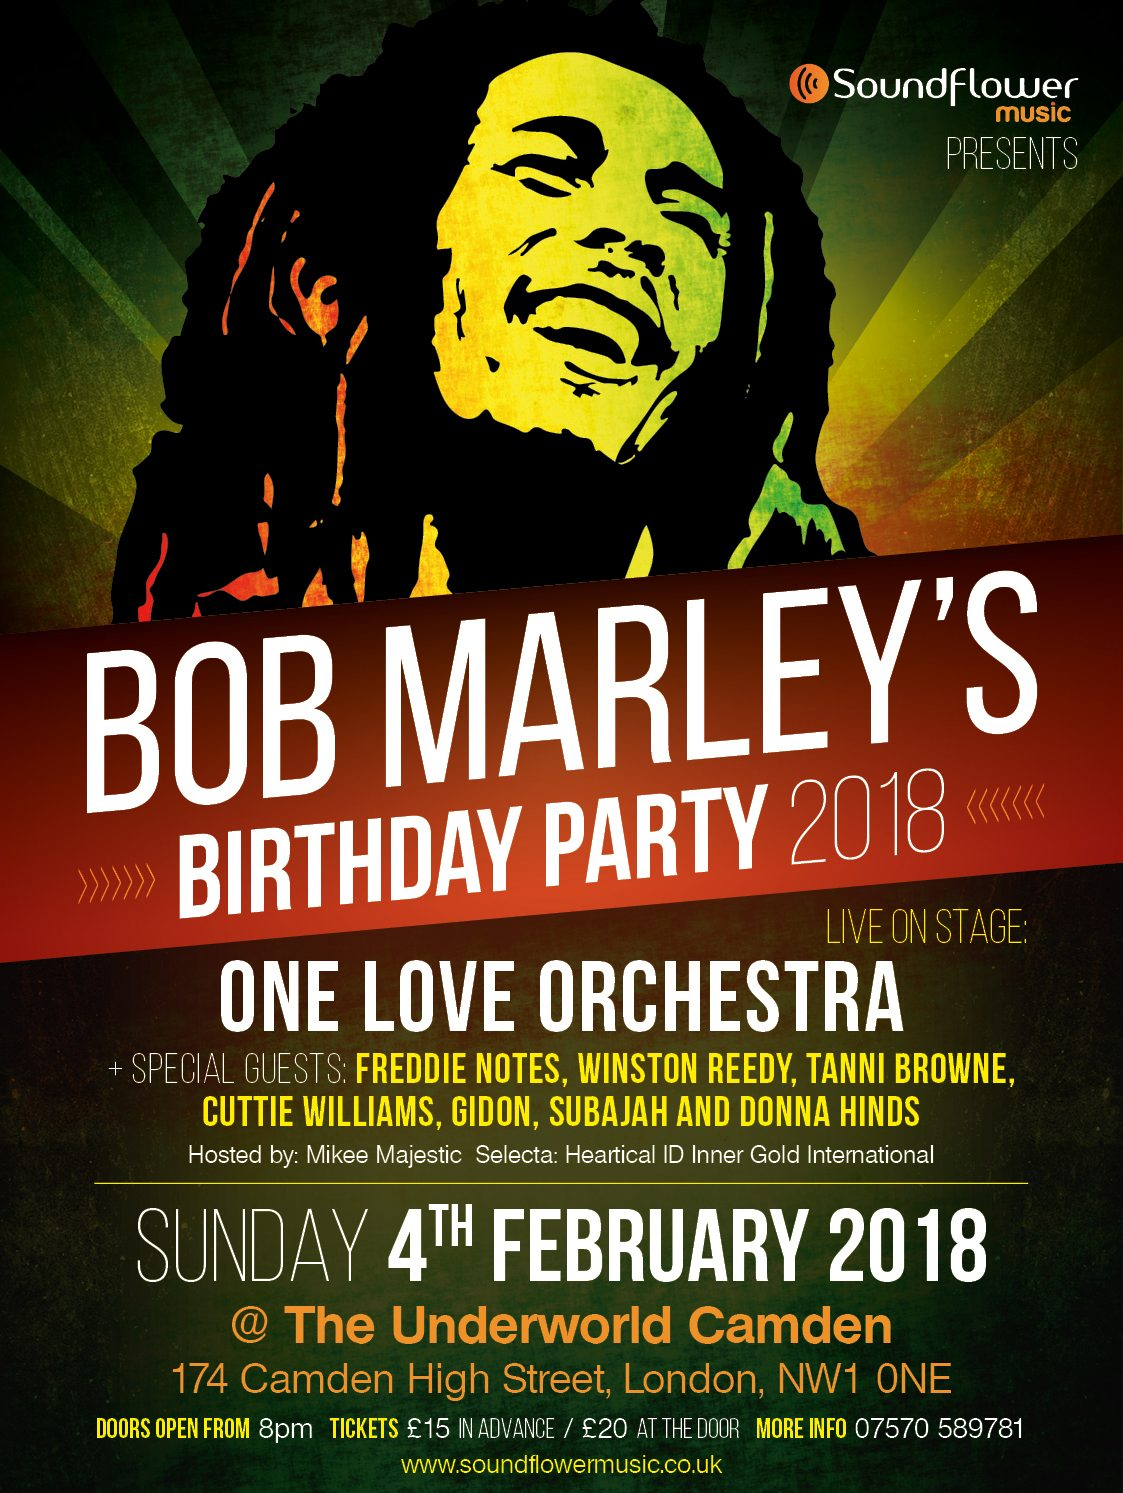 Bob Marley's Birthday Party 2018 with One Love Orchestra